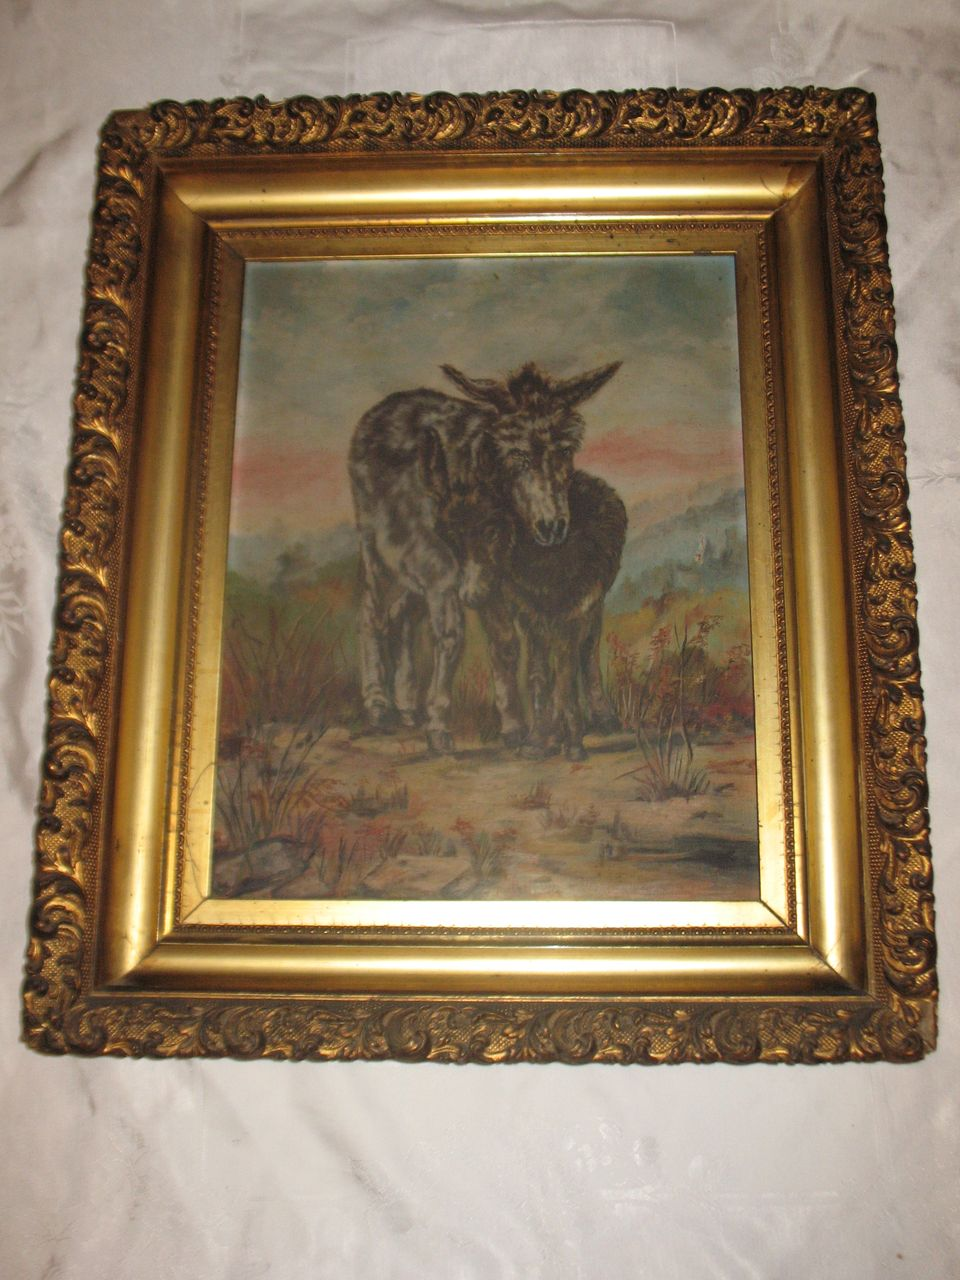 Antique Oil Painting Burros Donkeys SouthWest Landscape Desert Circa Late 1800's